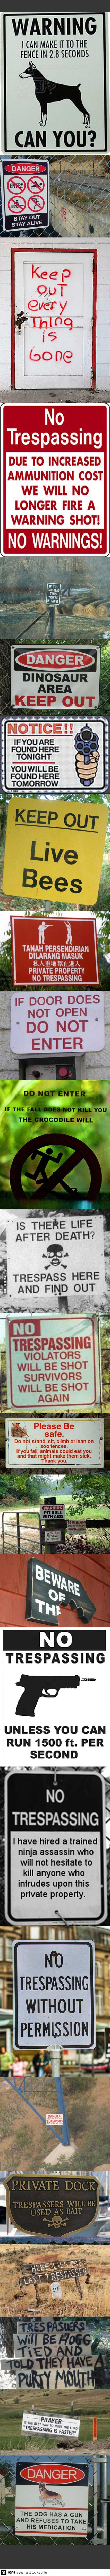 compilation, warning sign, keep out, private property, caution